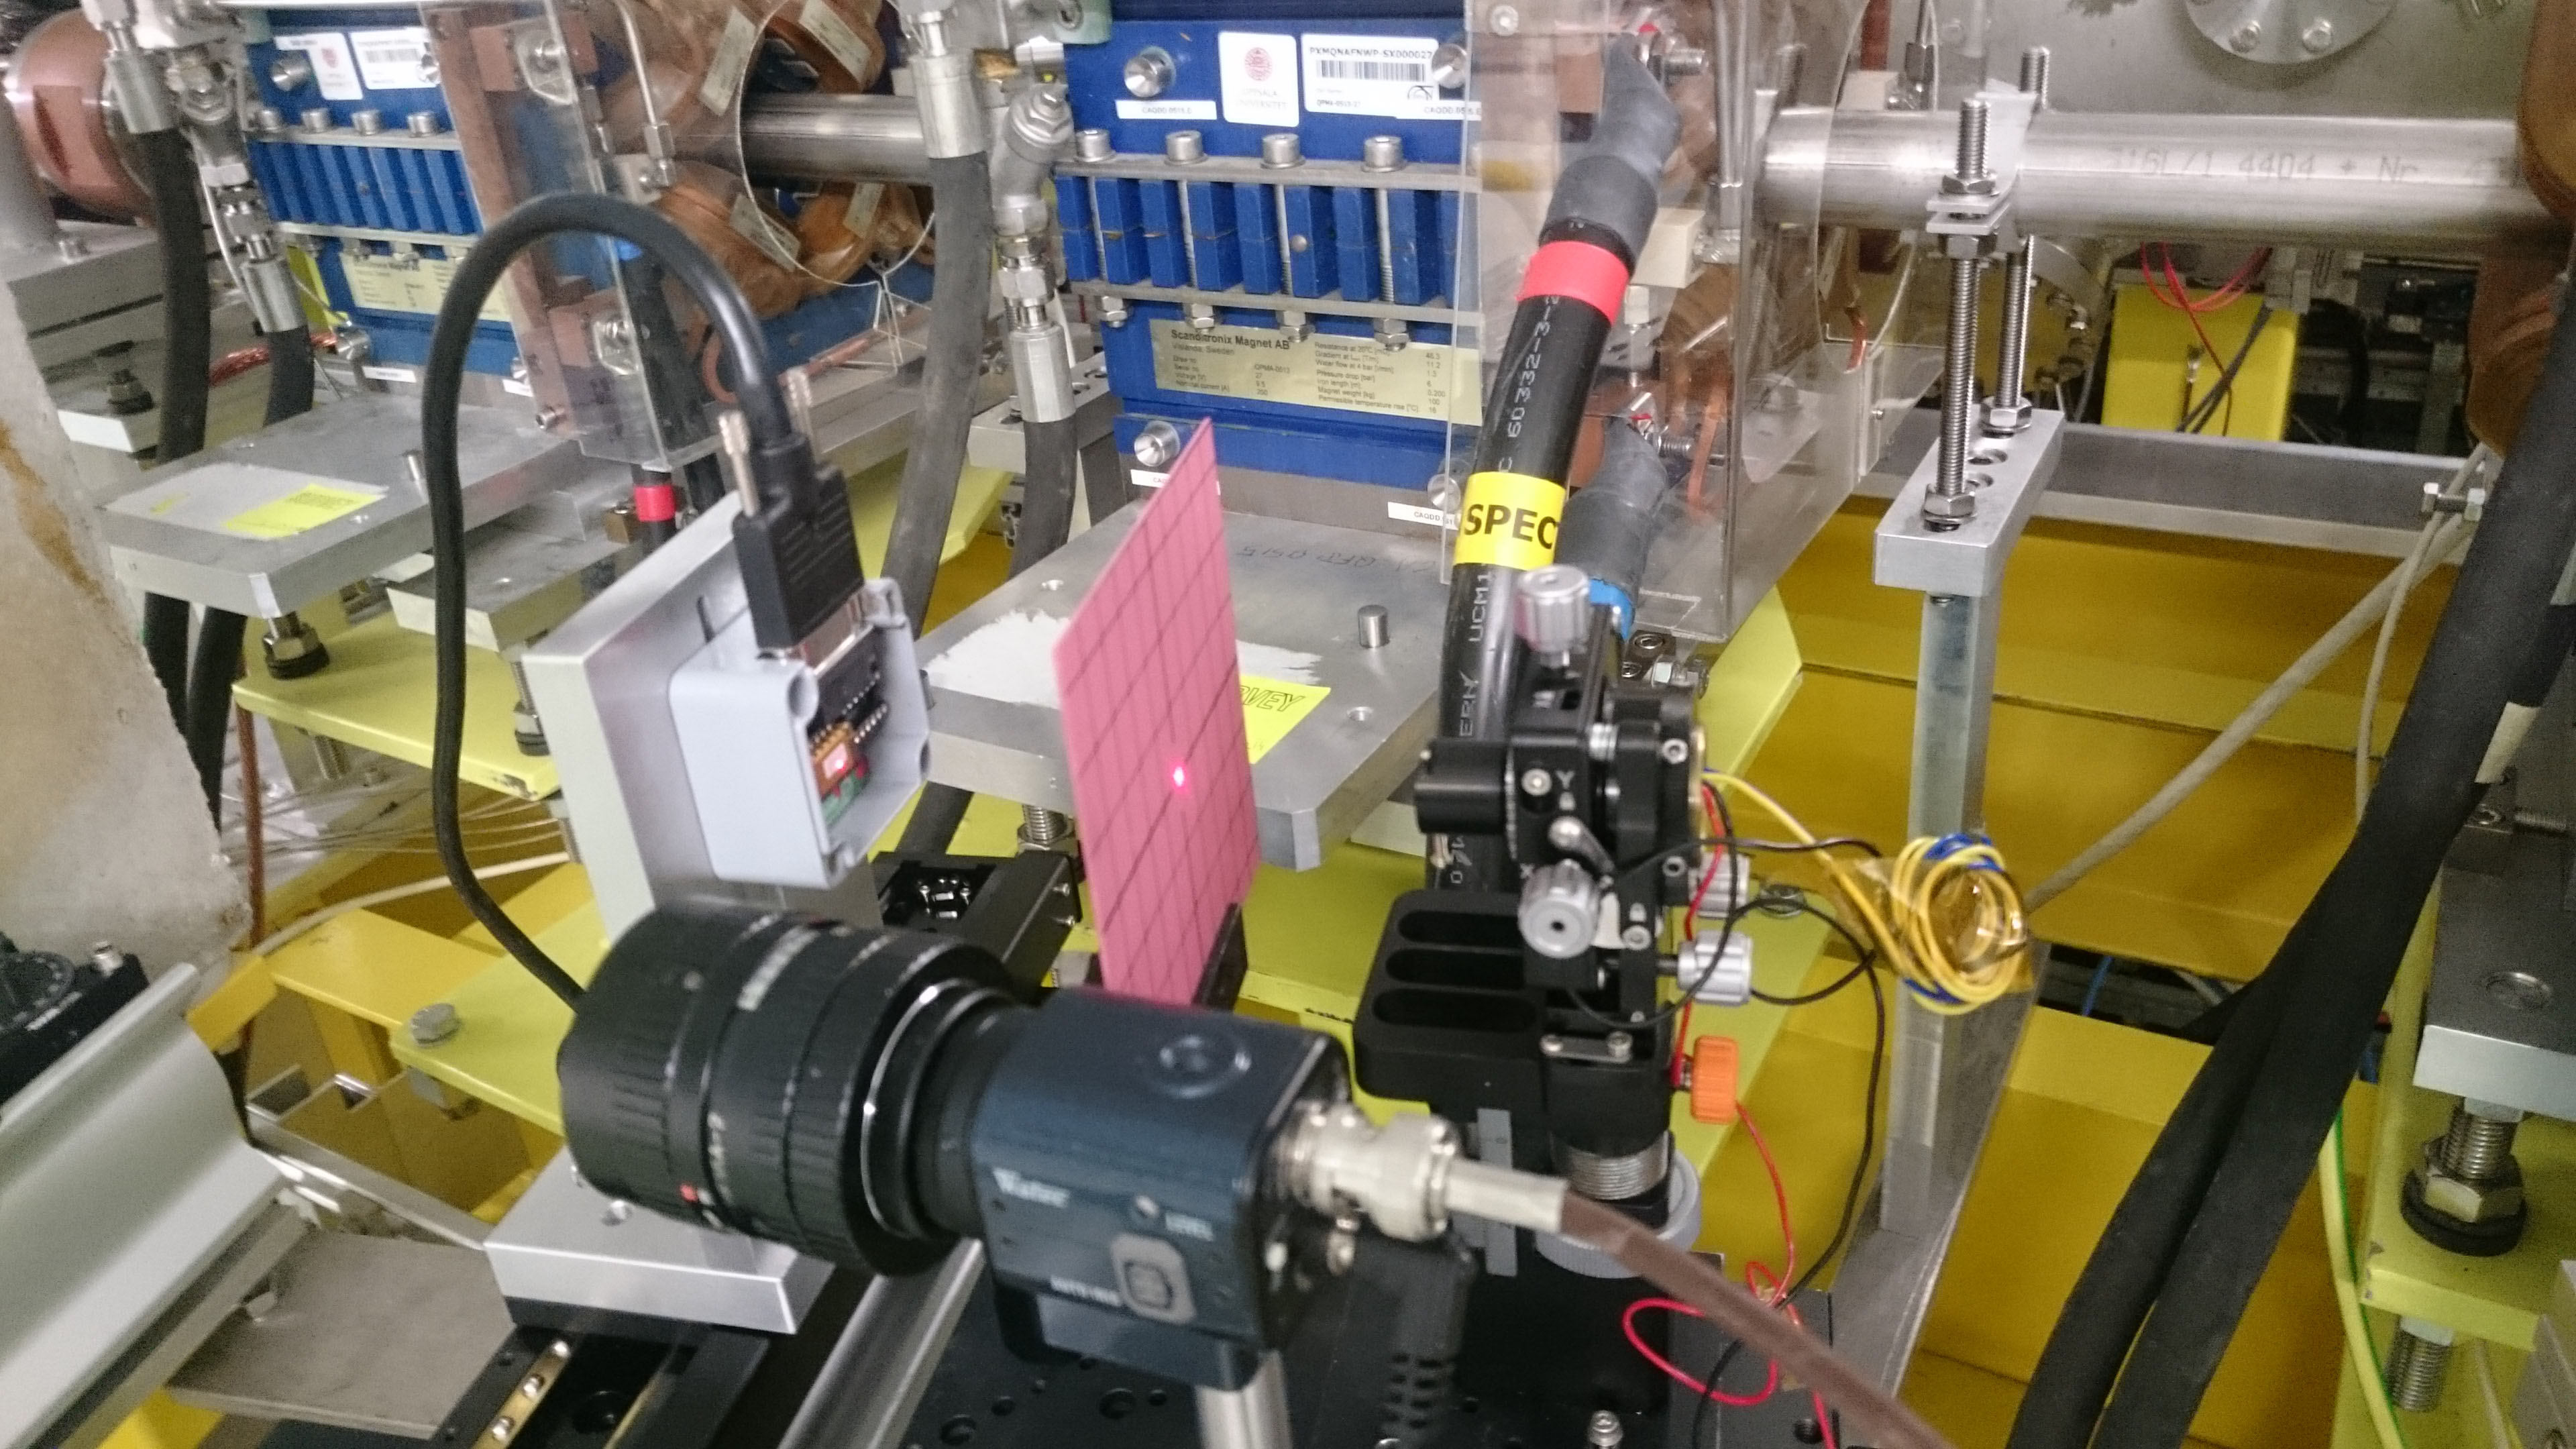 The Laser alignment System